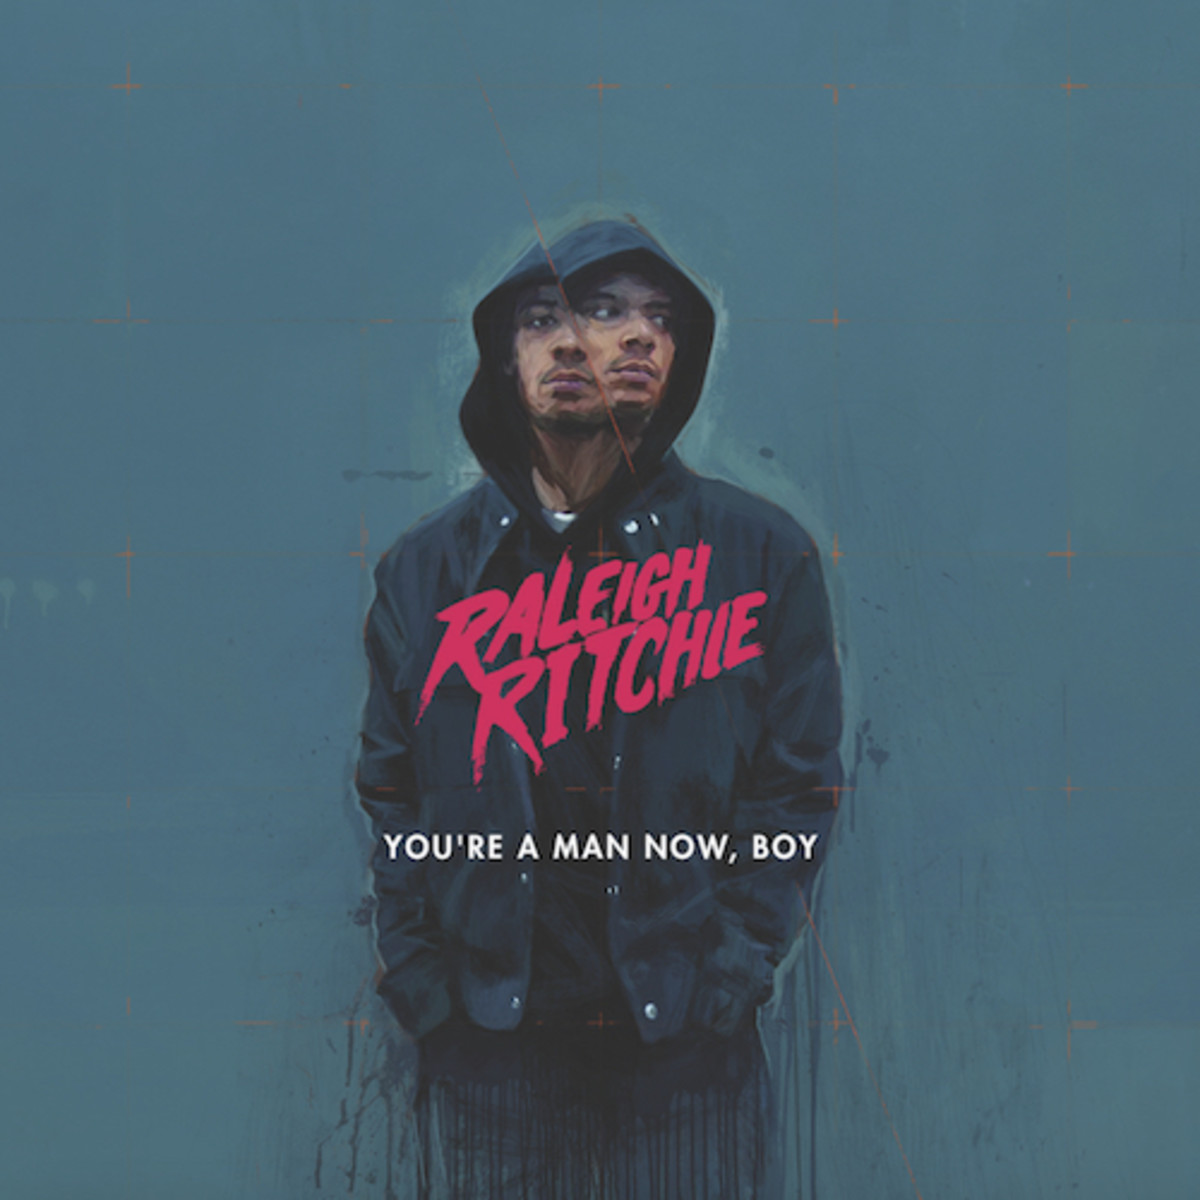 raleigh-ritchie-youre-a-man-now-boy1.jpg